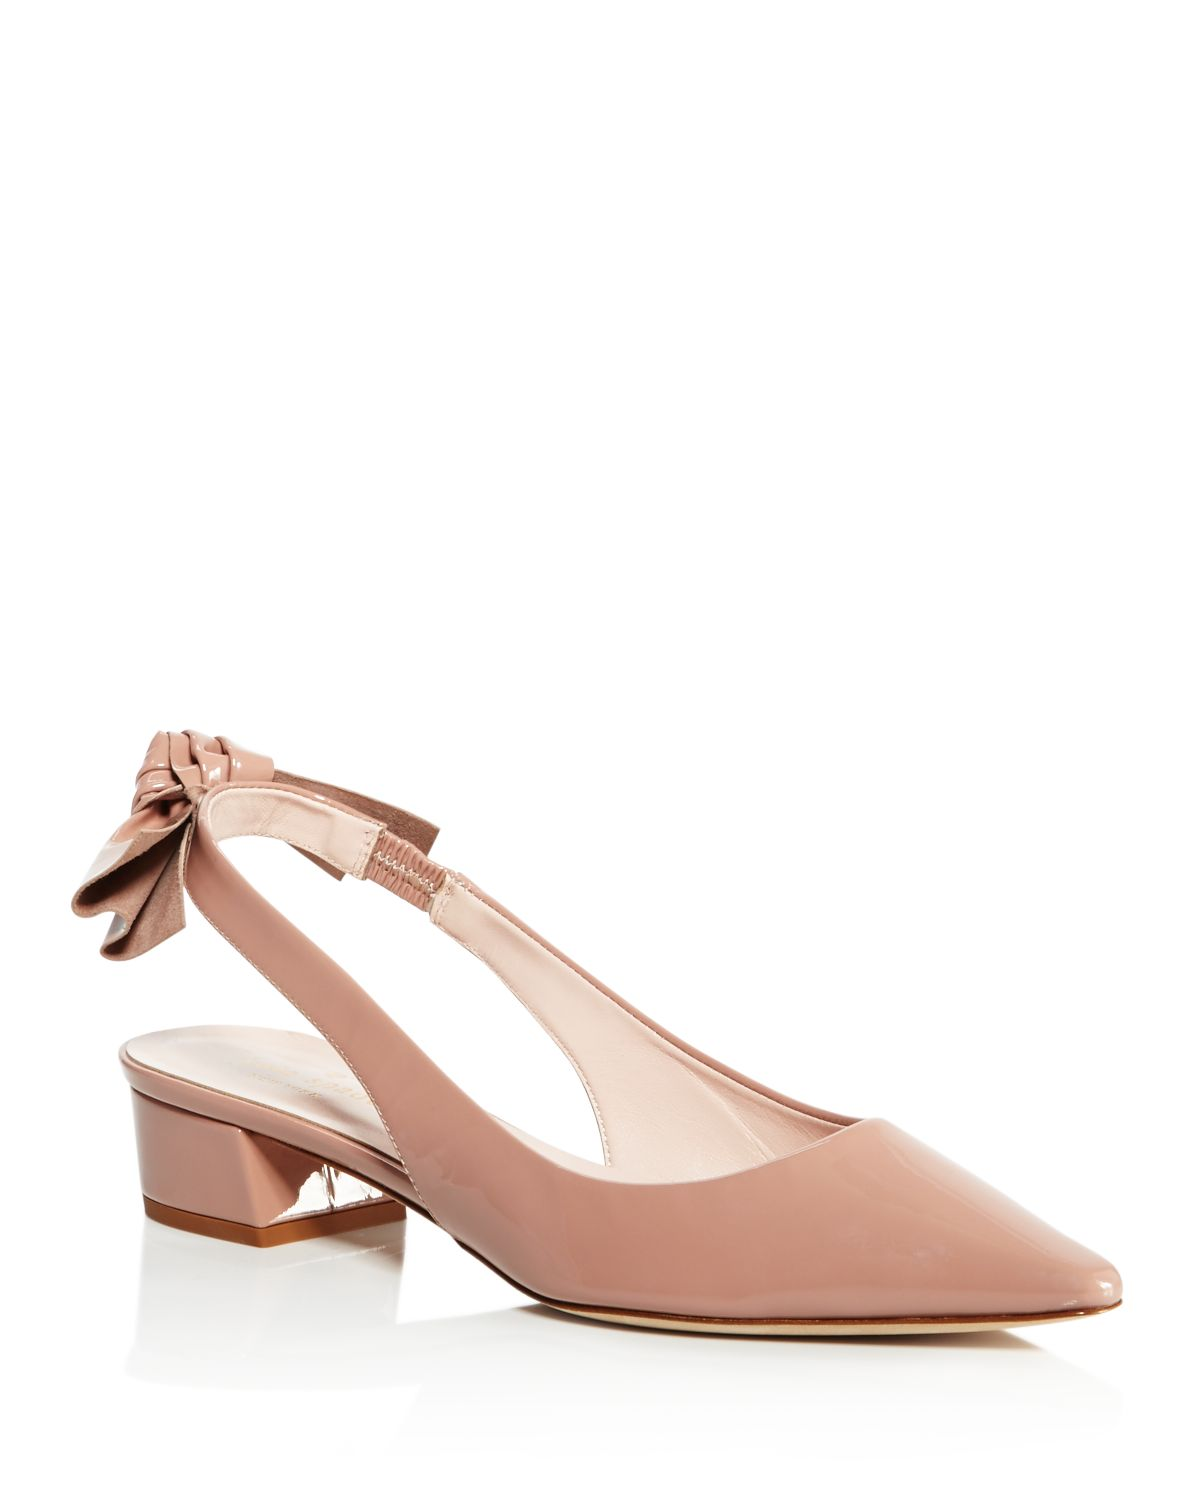 Kate Spade New York Patent Leather Slingback Pumps